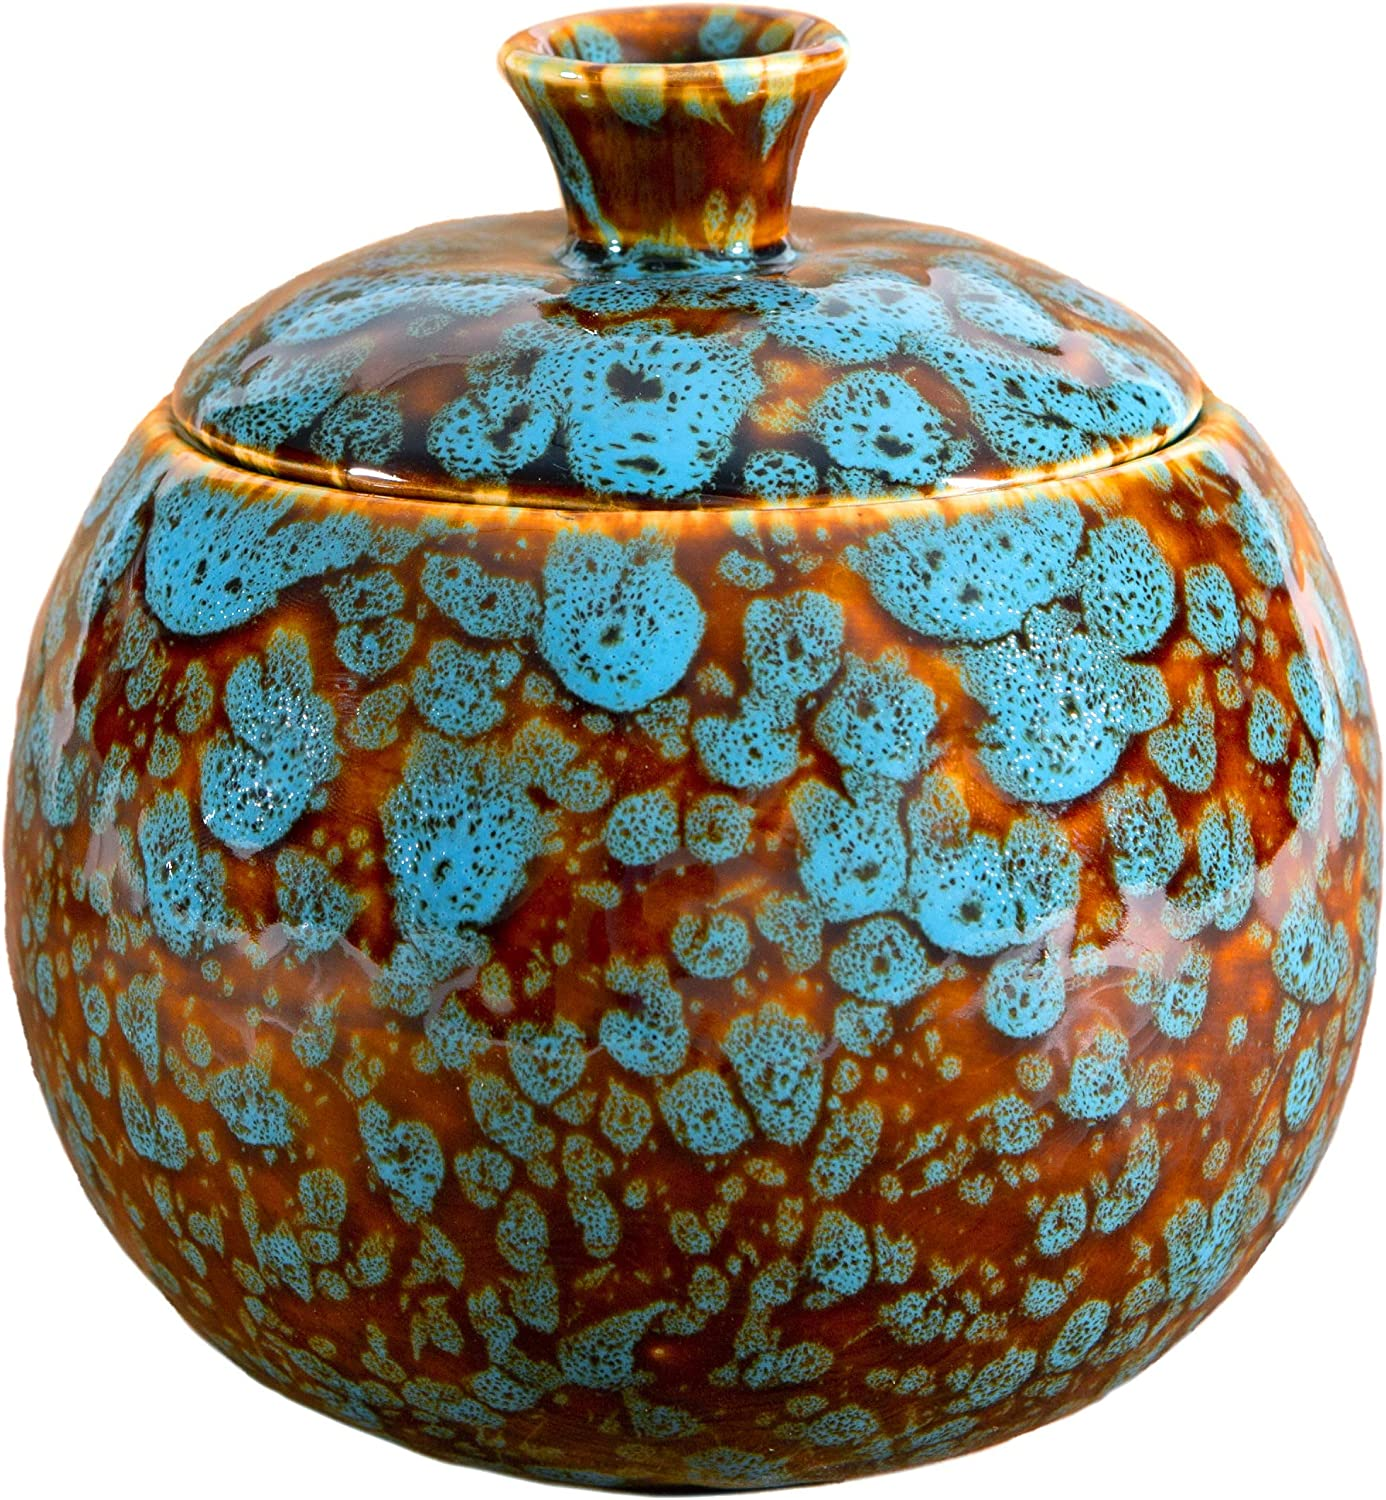 Elevated Lifestyle Fruit Fly Jar Trap for Kitchens - Decorative, Effective, Kid and Pet Friendly (Marbled Turquoise)